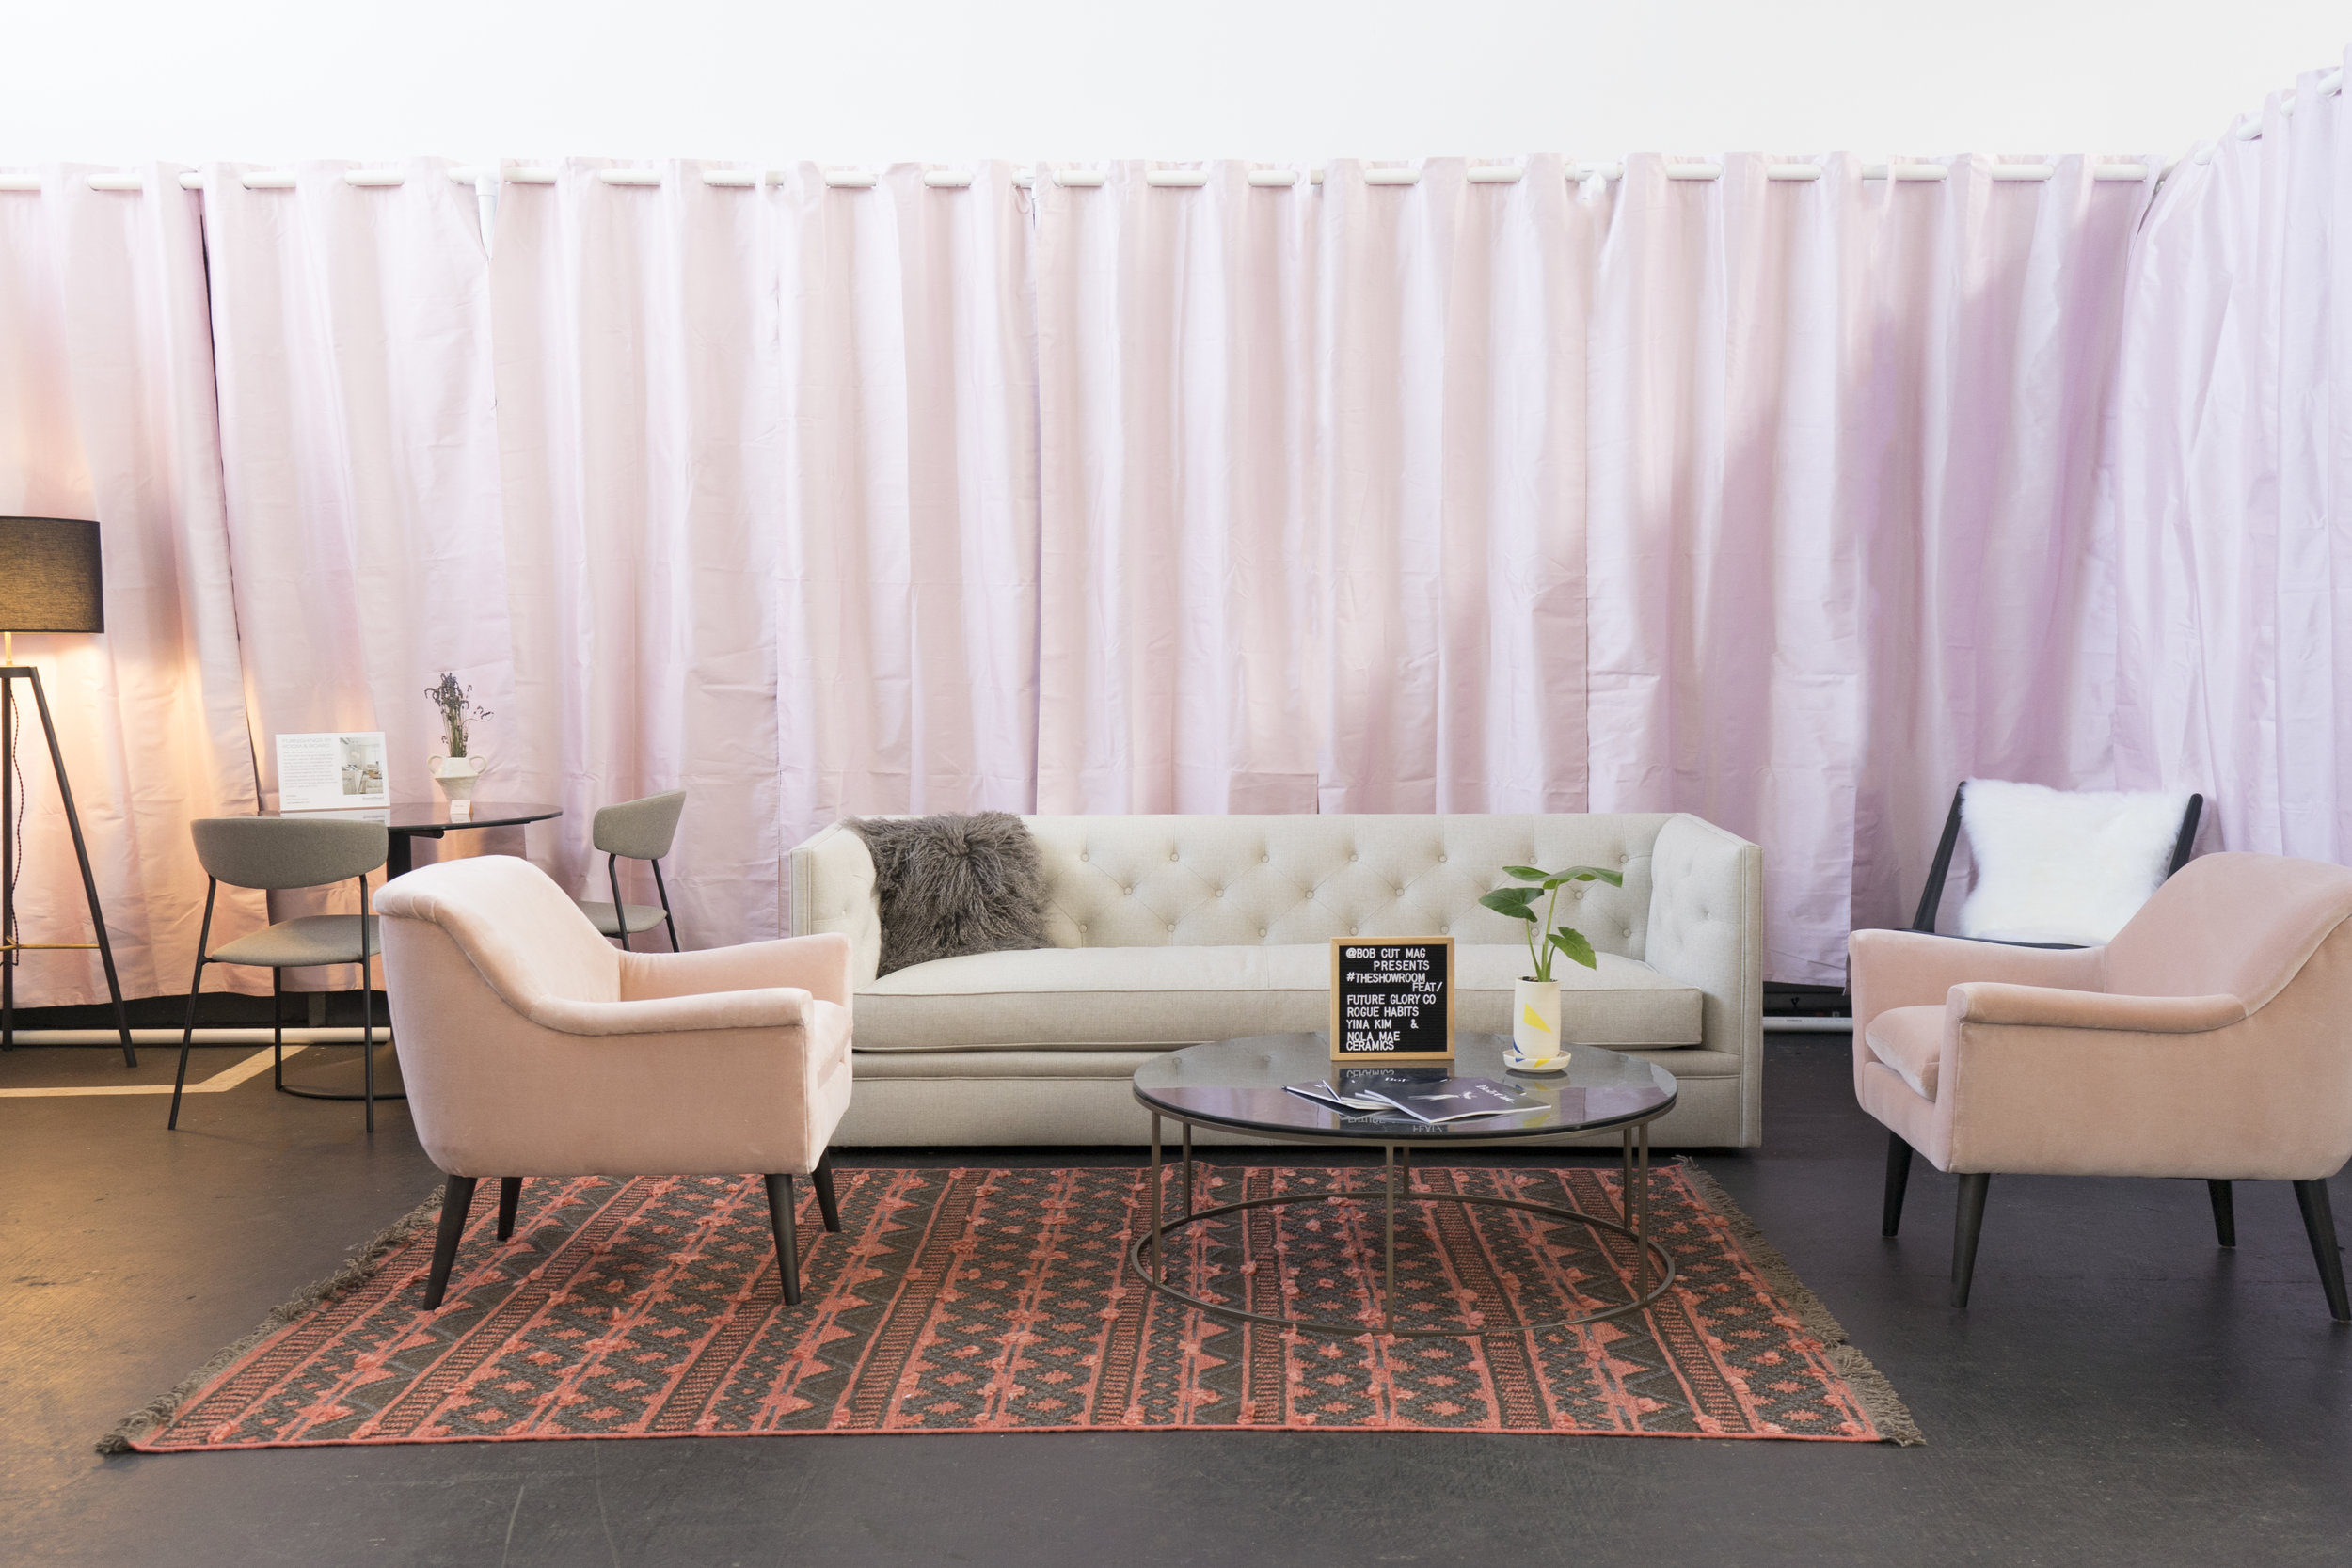 Featuring the  Embers Rugs ,  Tyne Round Coffee Table , Nola Mae Ceramics, Yina Kim,  the Pepper Pillow Ensemble ,  Murphy Chair & Ottoman ,  Oskar Lounge Chair , and the  Macalester Sofa .